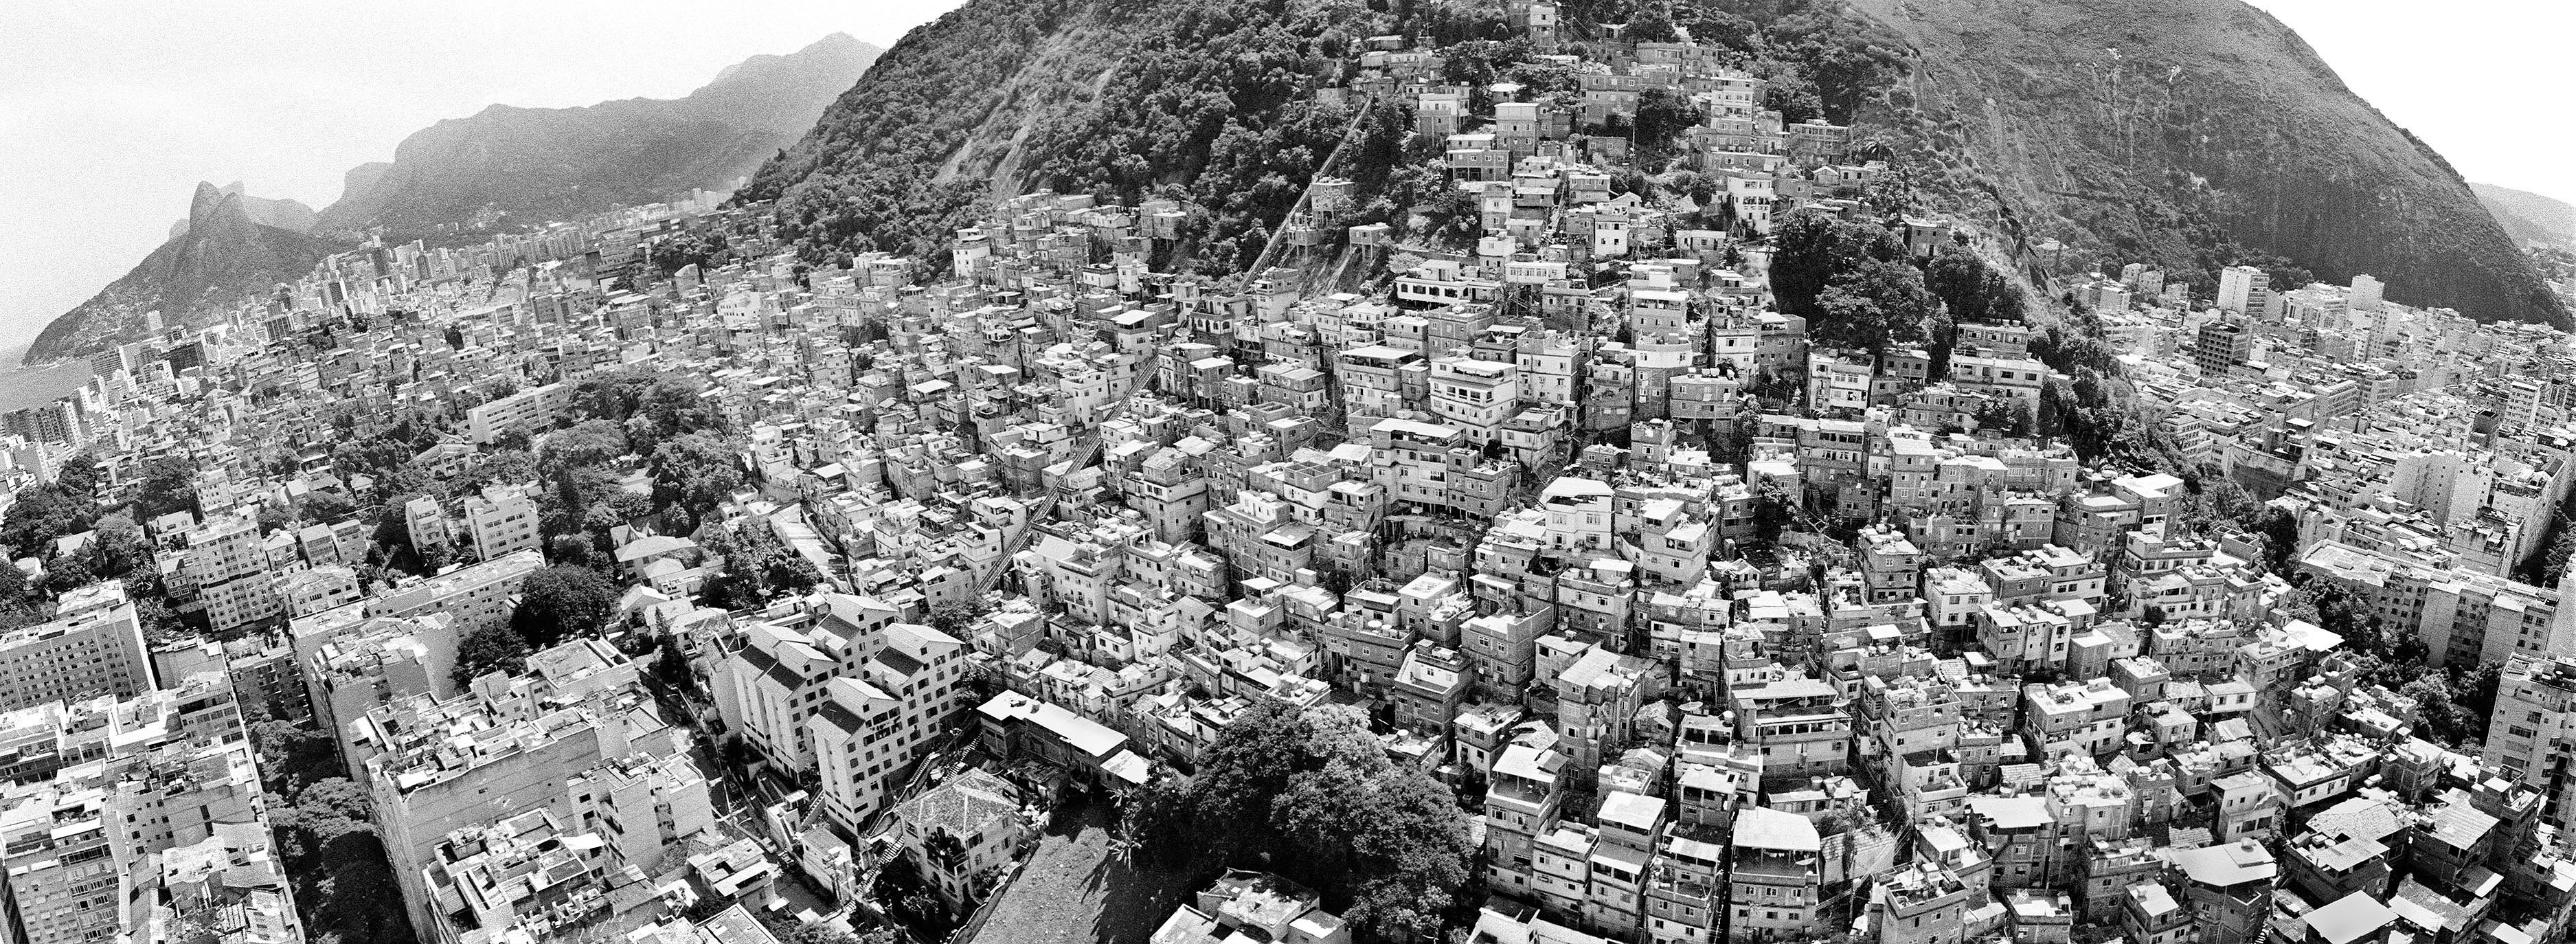 002 - Favelas do Rio by Andre Cypriano.jpg